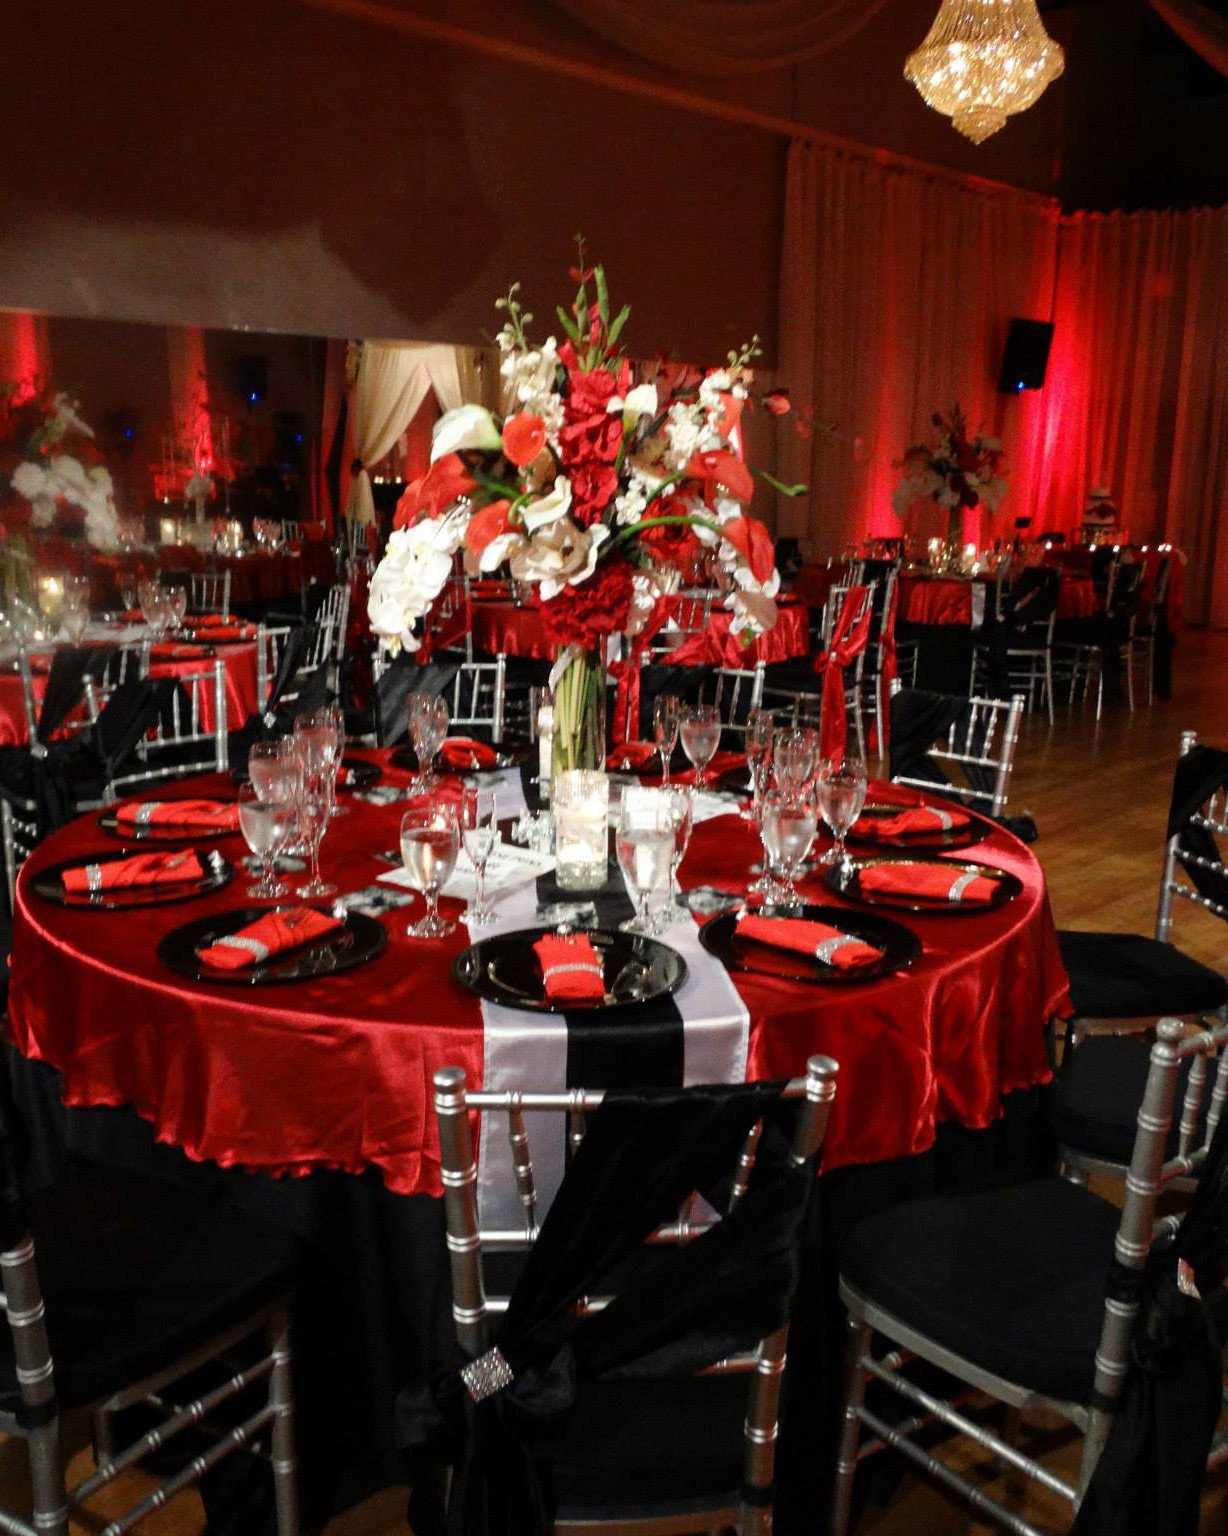 Red and Black Table Decor Inspirational De Versailles Banquet Hall